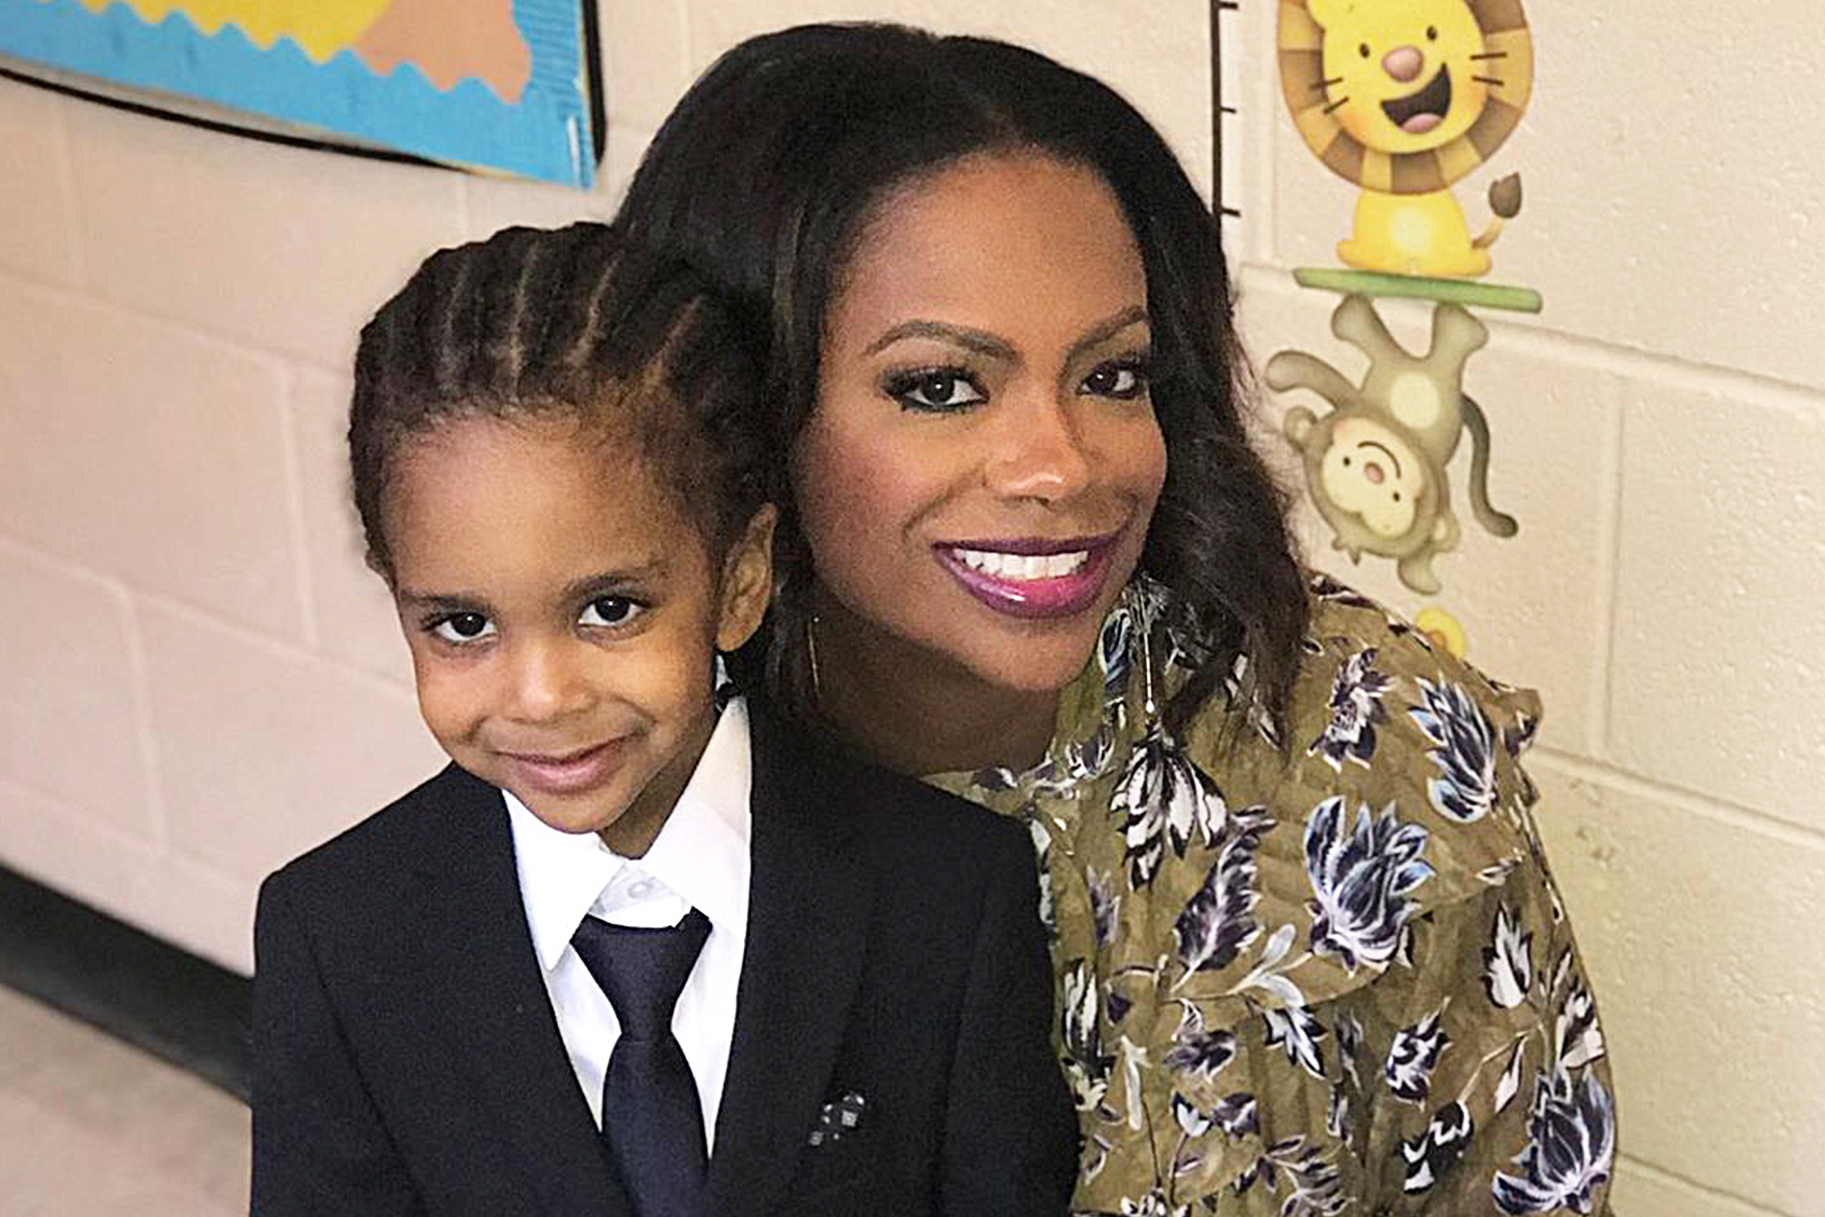 Kandi Burruss Makes Fans Smile With These New Photos Of Her Son, Ace Wells Tucker